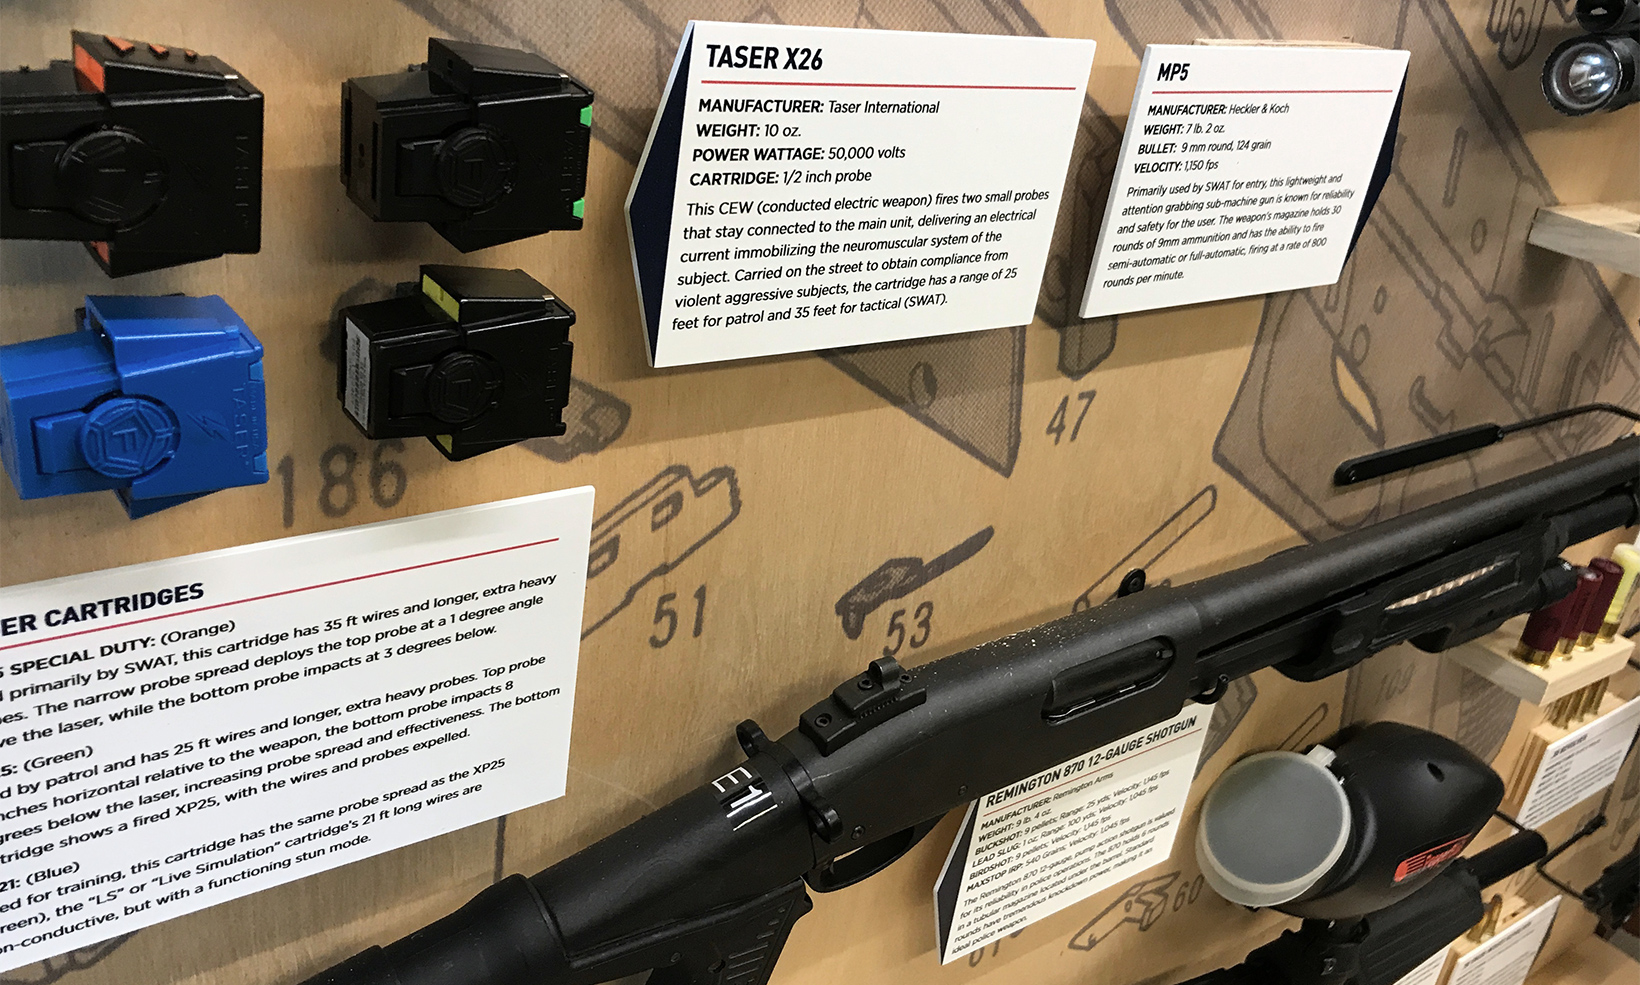 Information cards explain the details and usage of various firearms as part of the CPD law enforcement museum